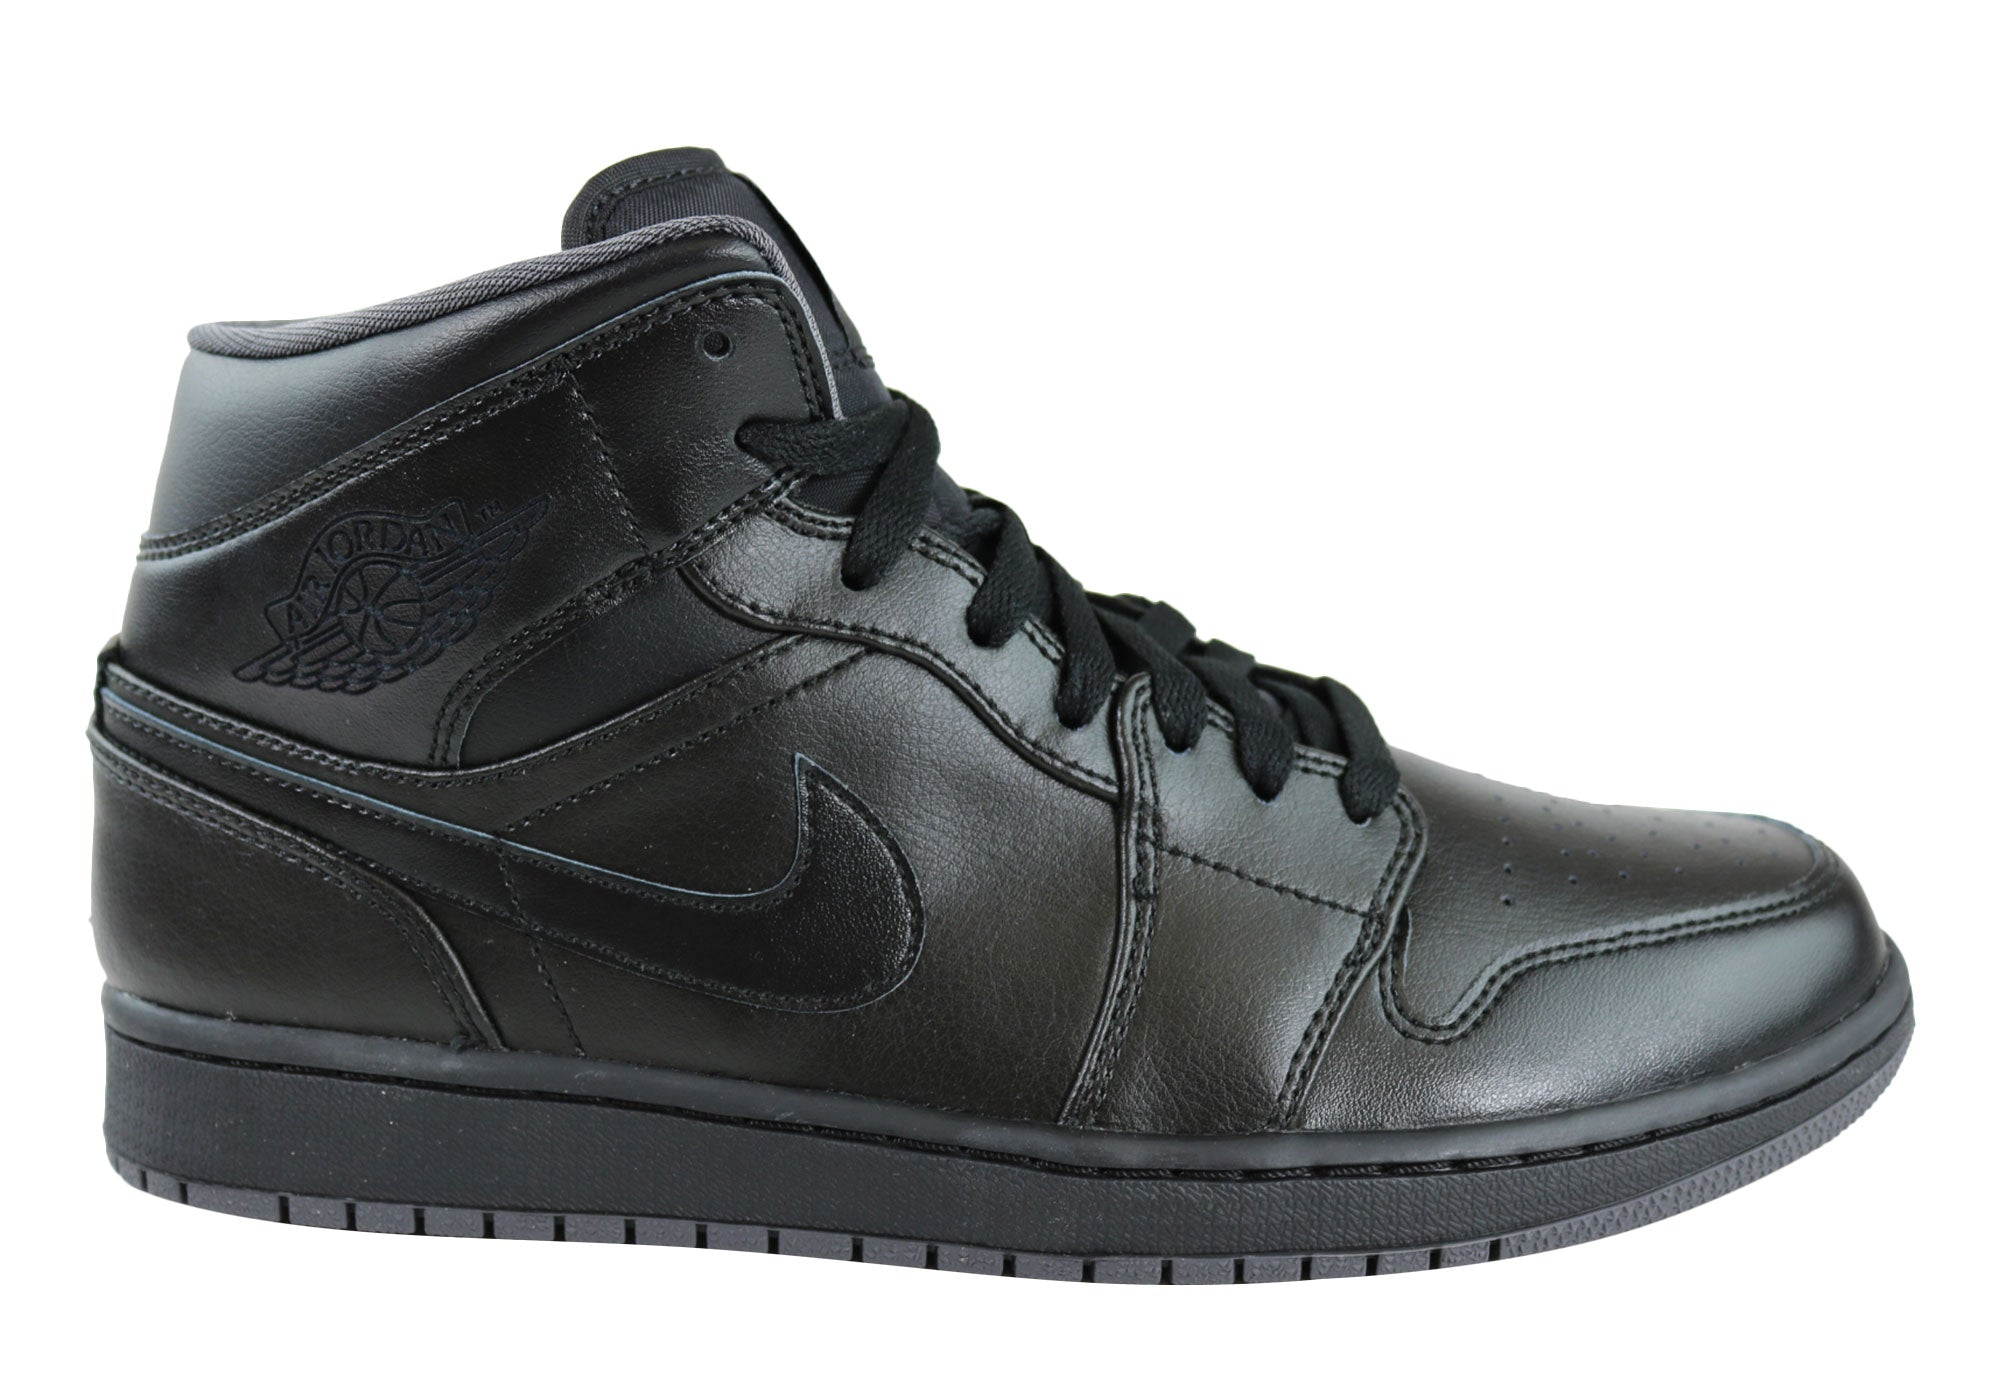 3e07c9b7324dc9 Home Nike Air Jordan 1 Mid Leather Hi Tops Basketball Shoes. Sale ends in  41 days